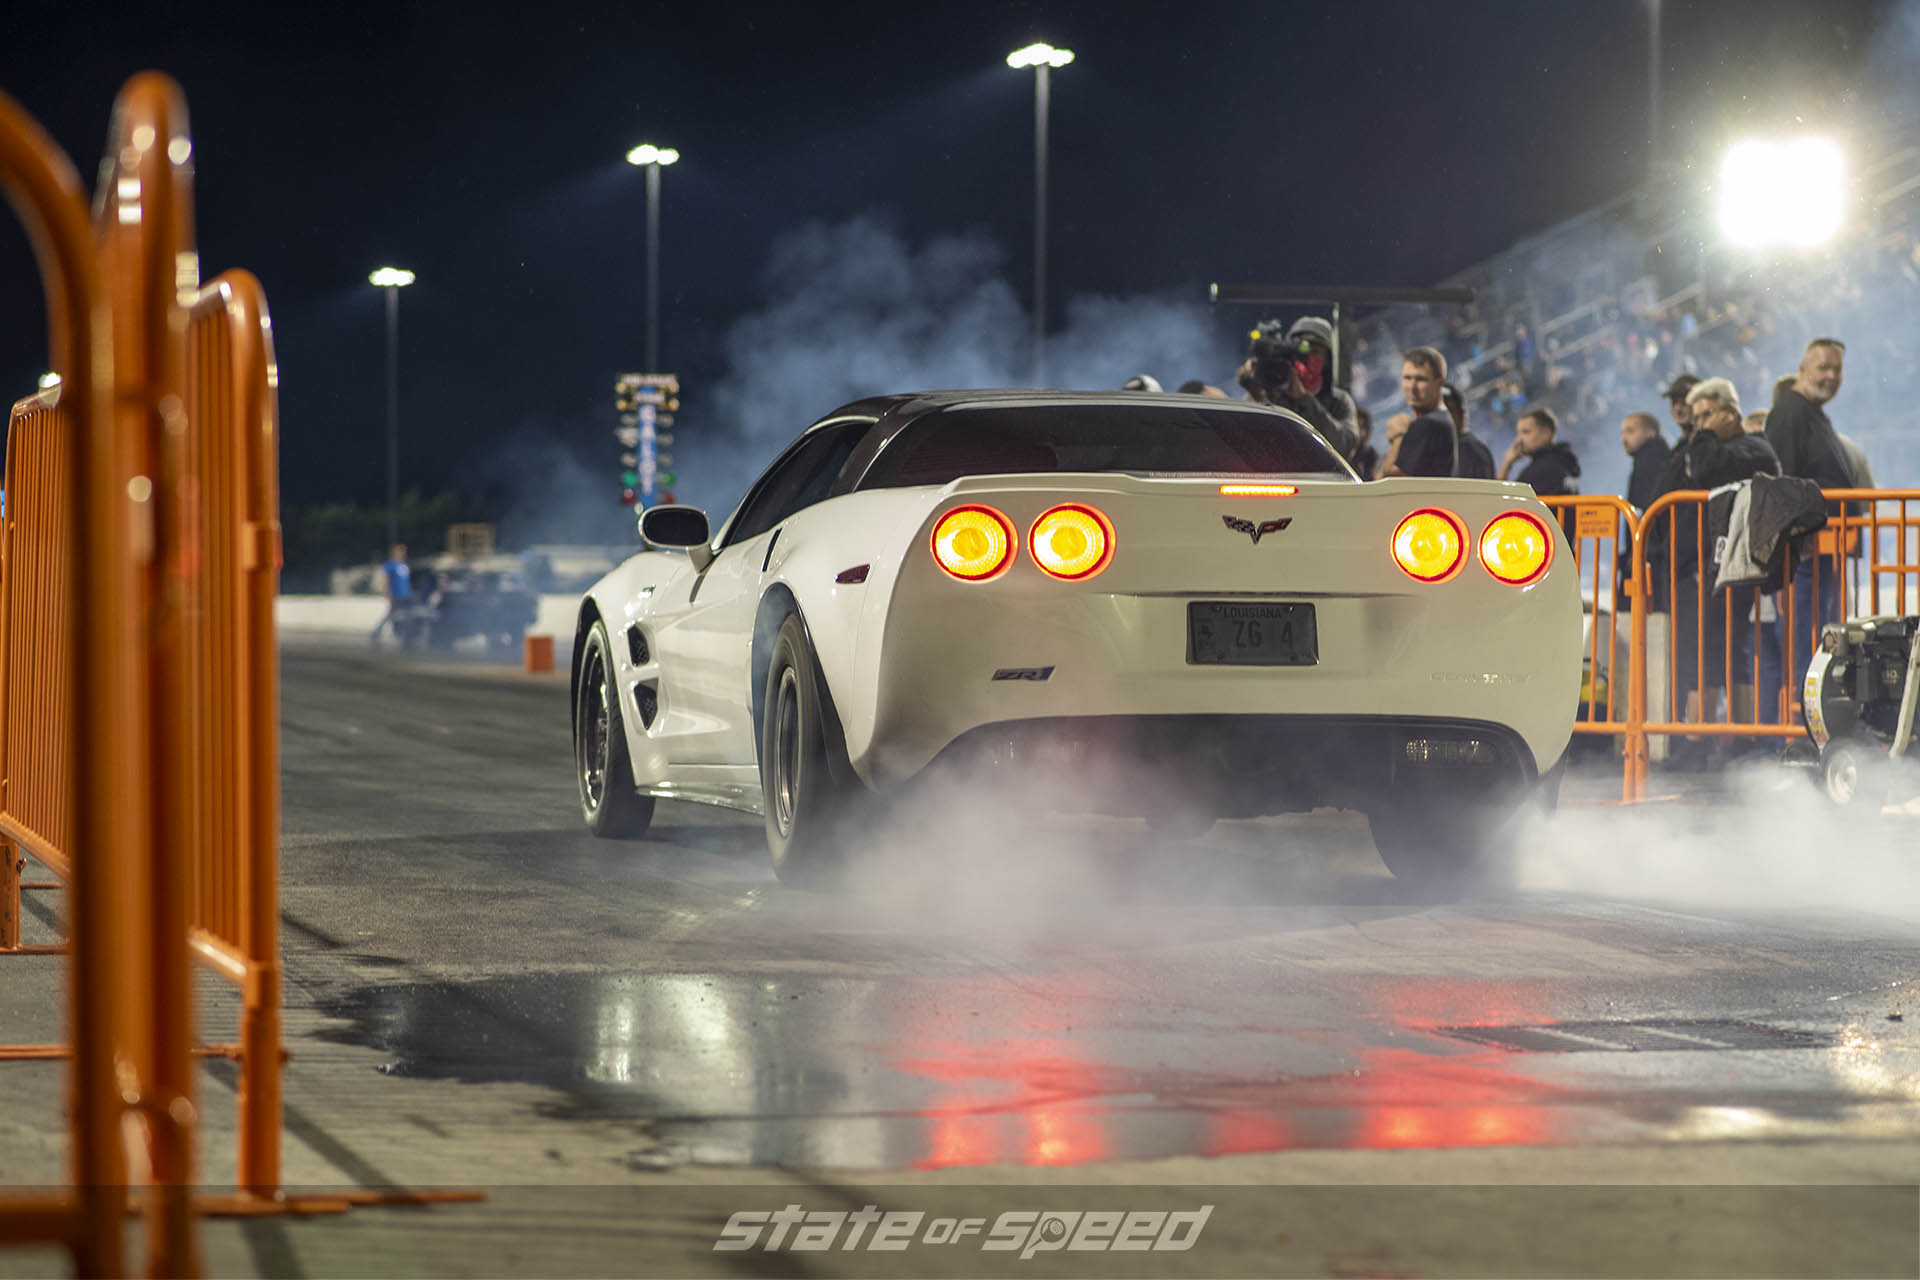 Corvette on the dragstrip at night